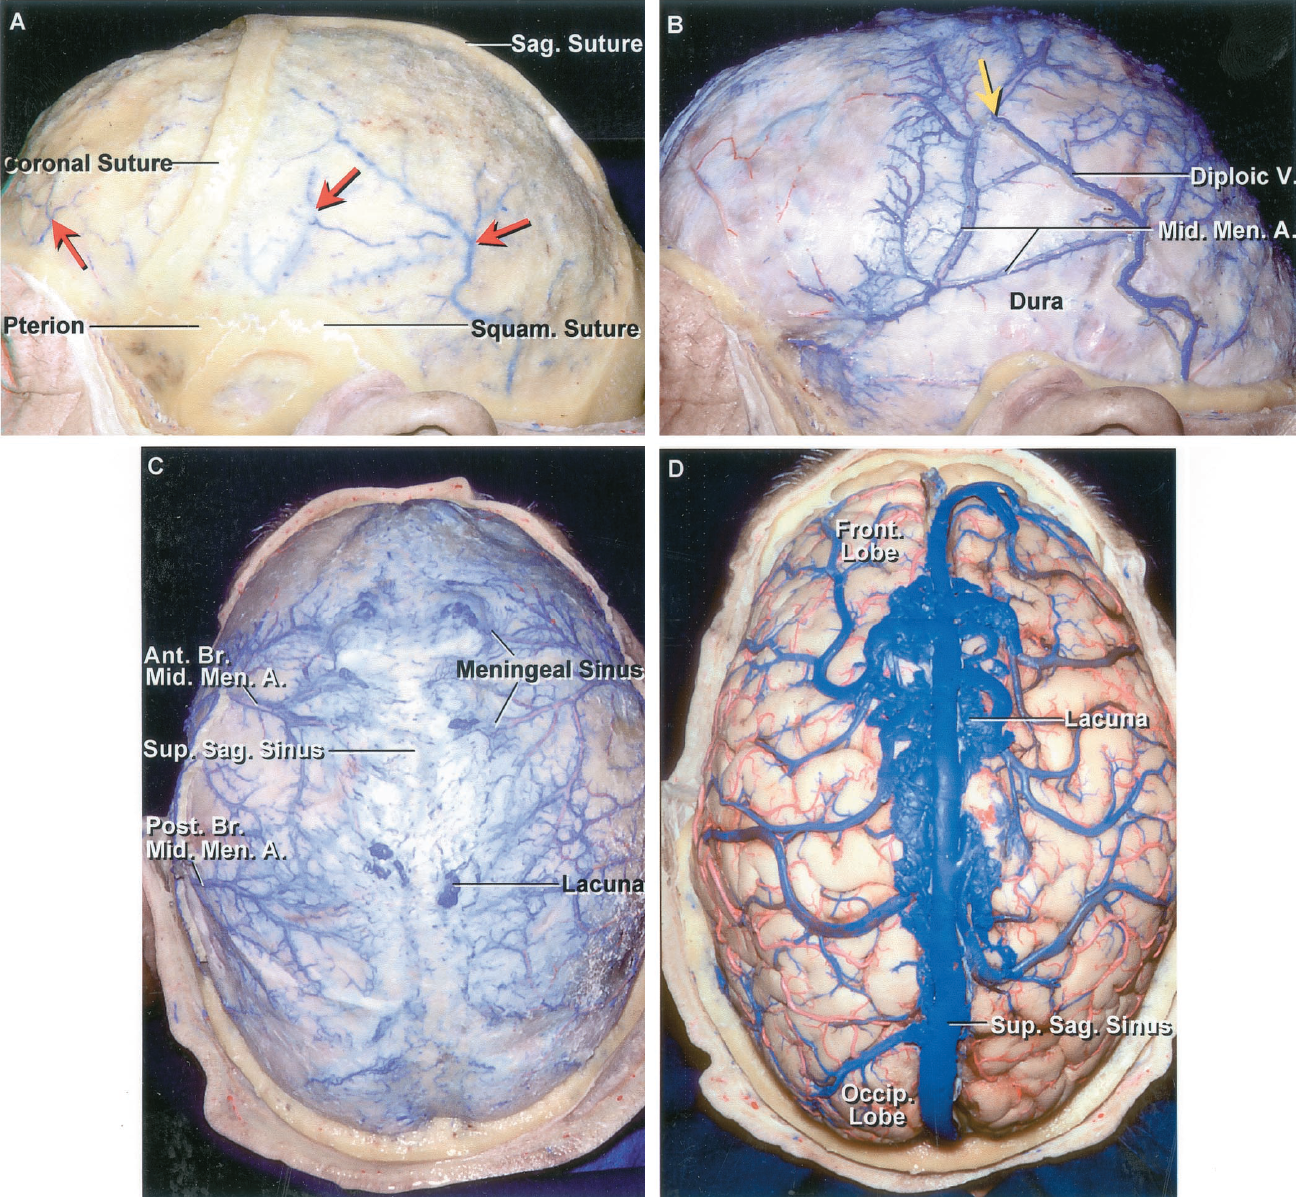 FIGURE 4.8. A, the outer table of the cranium has been removed, while preserving the sutures, to expose the diploic veins (red arrows) coursing between the inner and outer table. B, the inner table has been removed to expose the meningeal sinuses coursing along the middle meningeal artery, while preserving the large posterior diploic vein in the bone. The upper end of the diploic vein joins the venous sinuses around the middle meningeal artery at the yellow arrow. C, superior view. The dura covering the cerebral hemispheres contains a plexus of small meningeal sinus veins that follow the branches of the meningeal arteries. The largest meningeal sinuses course along the anterior and posterior branches of the middle meningeal artery and extend up to the superior sagittal sinus and the region of the venous lacunae. D, the dura has been opened and the venous lacunae preserved. The veins from the posterior part of the hemisphere are directed forward. A., artery; Ant., anterior; Br., branch; Men., meningeal; Mid., middle; Occip., occipital; Post., posterior; Sag., sagittal; Squam., squamosal; Sup., superior; V., vein.